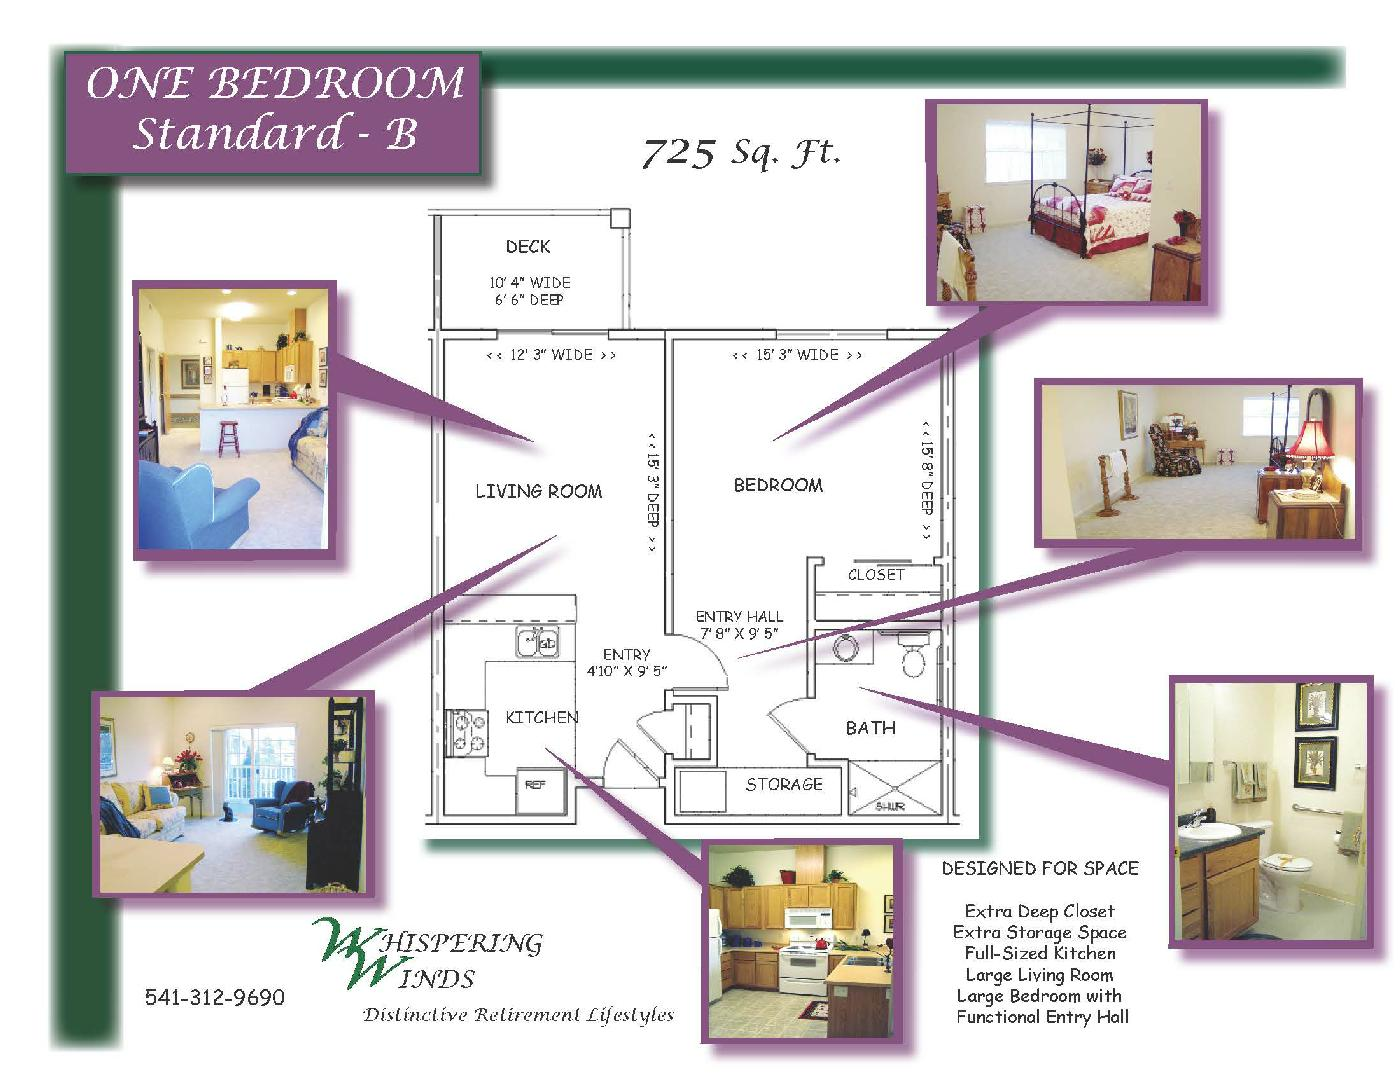 Layout Example - One Bedroom Standard - B